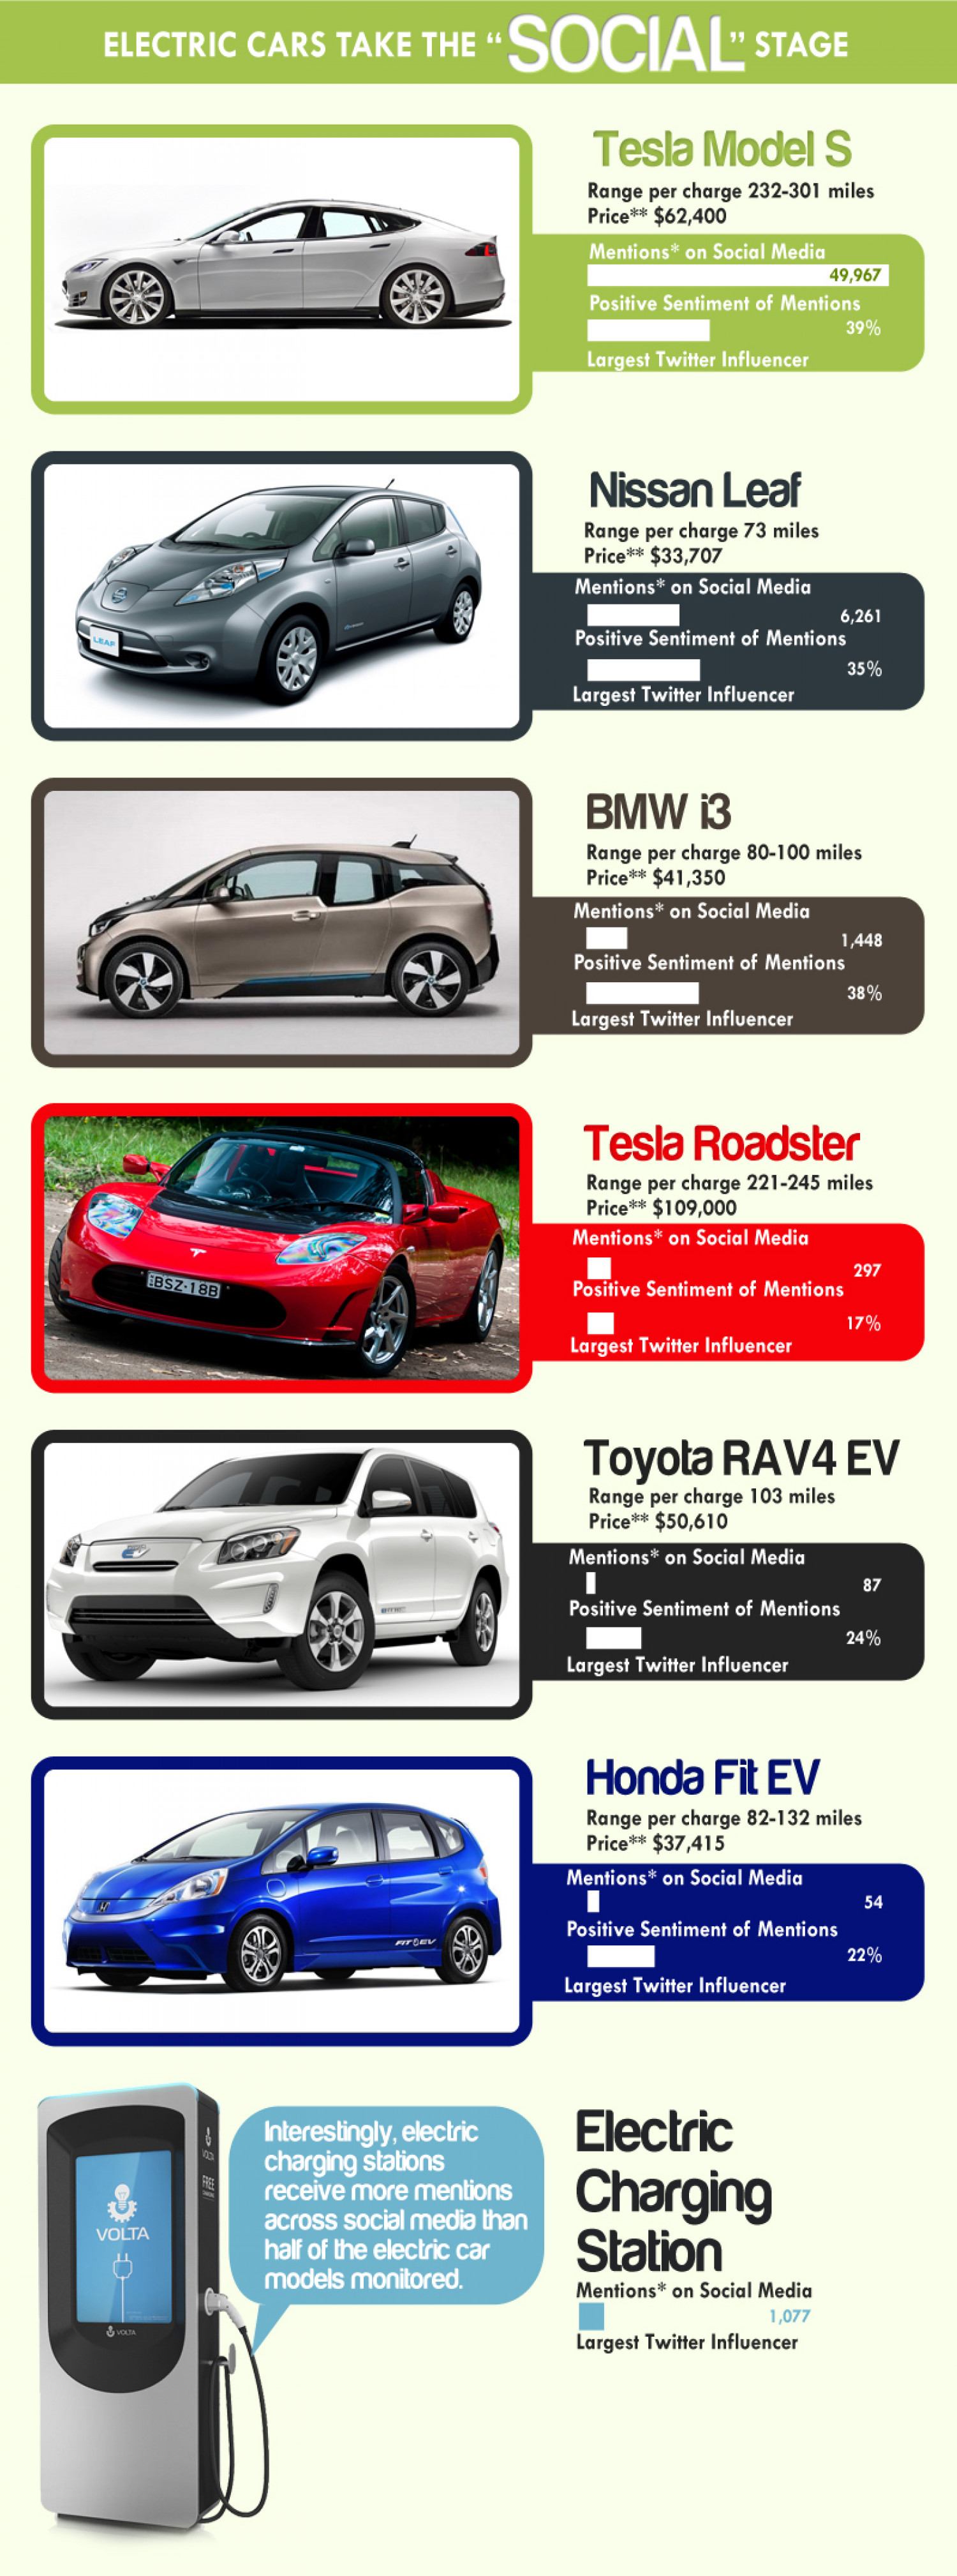 Electric Cars take the Social Stage Infographic